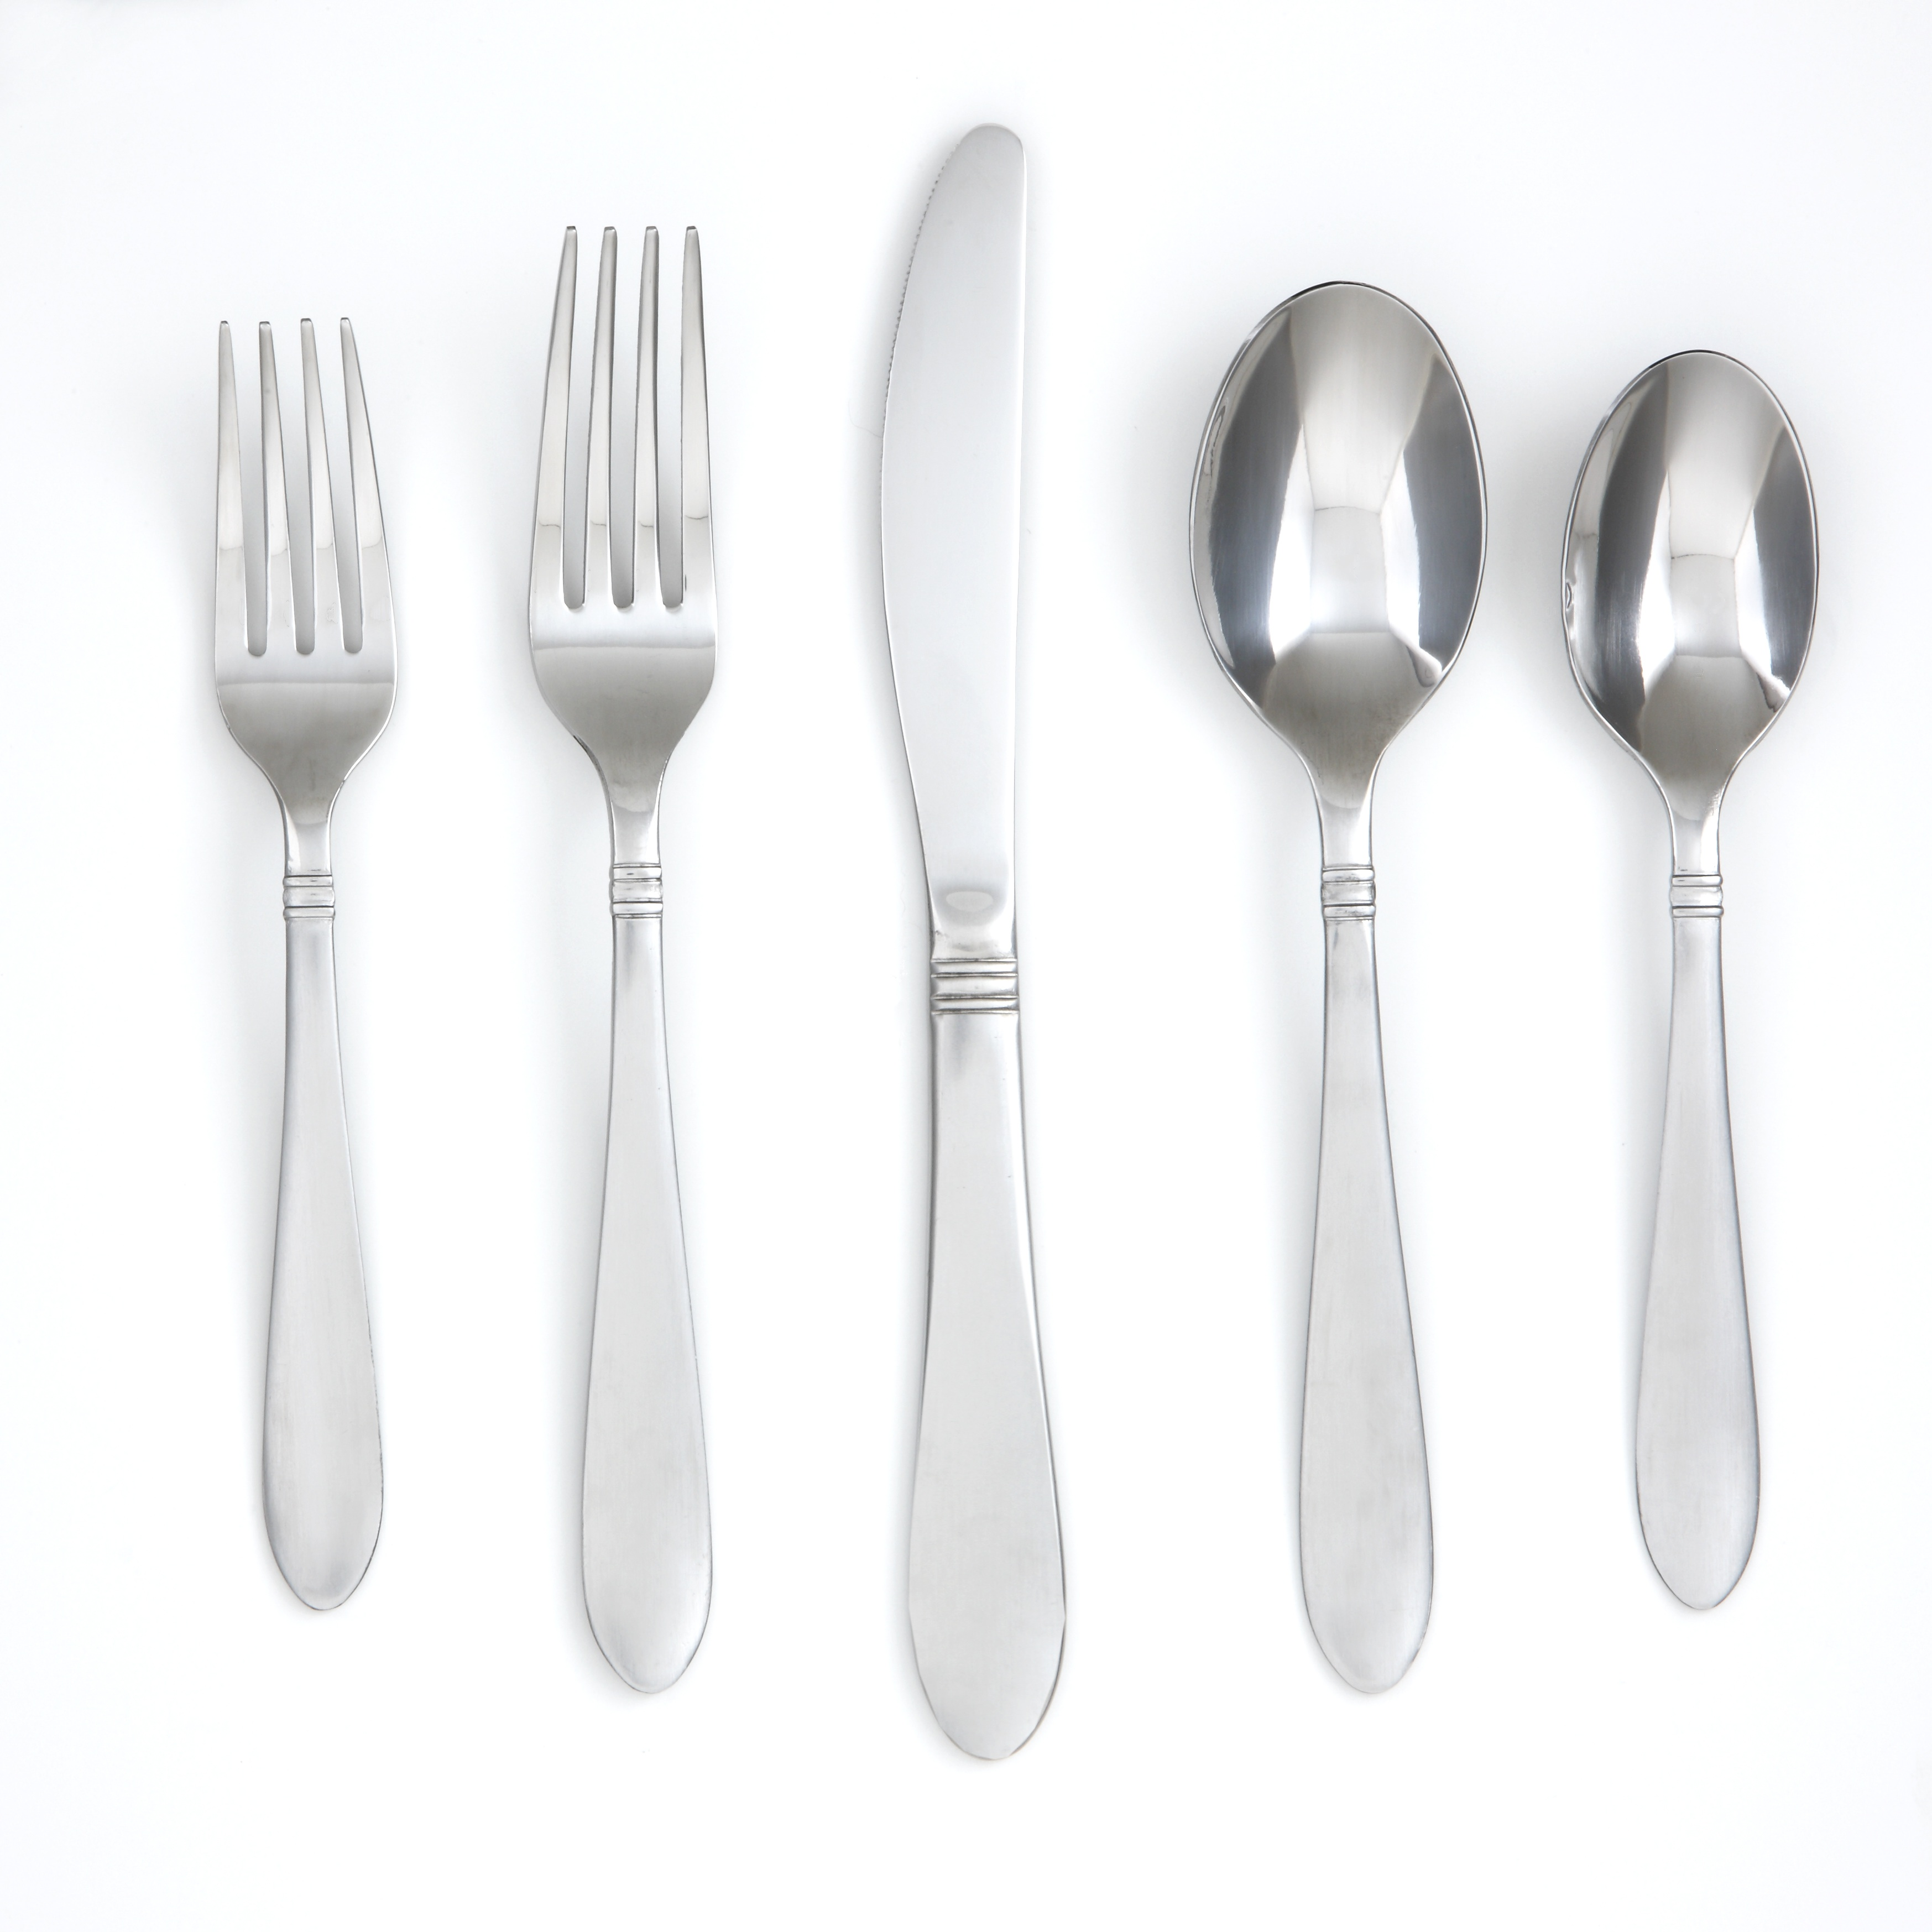 Exquisite cambridge flatware 5 pcs silverware flatware for kitchen or dining Ideas